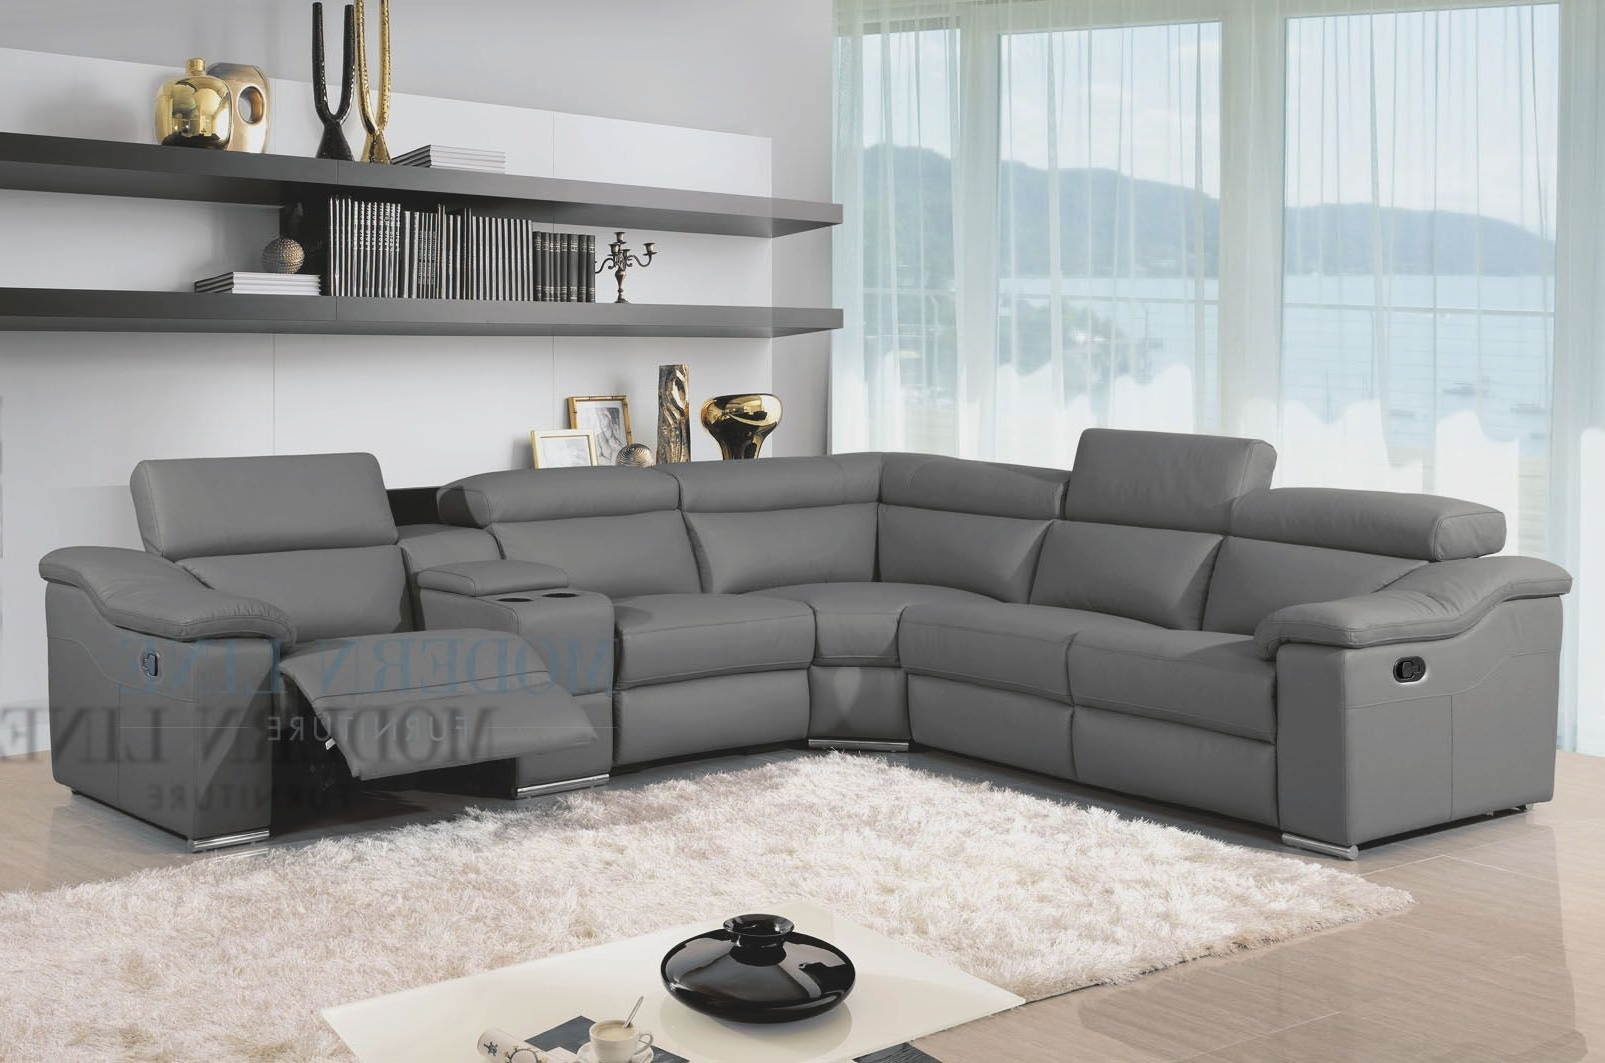 Awesome Great Charcoal Grey Sectional Sofa 29 About Remodel Home With Regard To Best And Newest Modern Reclining Leather Sofas (Gallery 4 of 20)